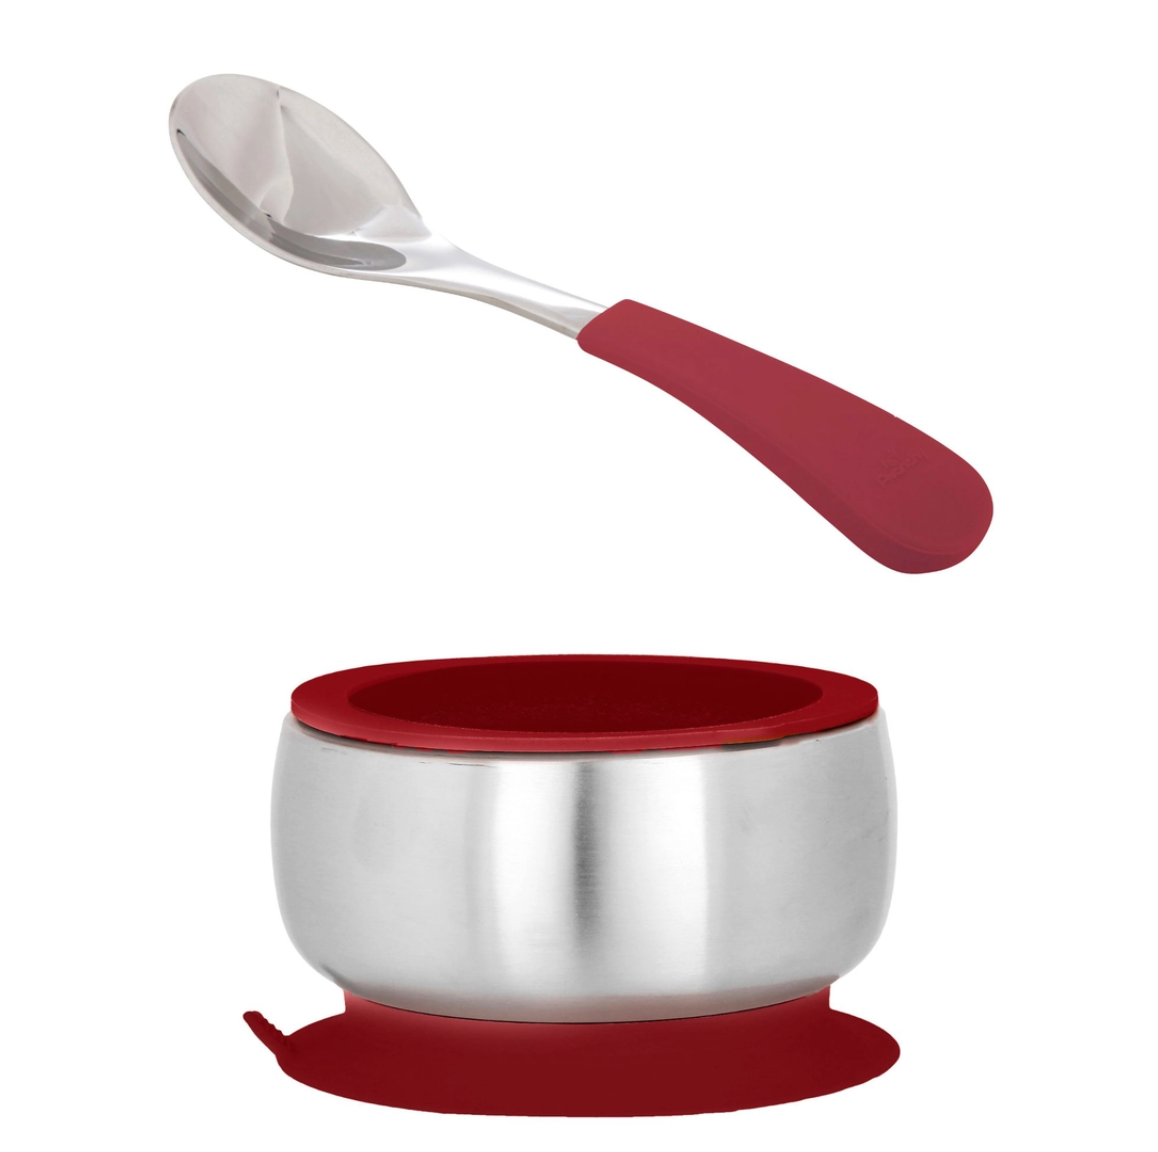 stainless steel suction bowl + airtight lid set -magenta